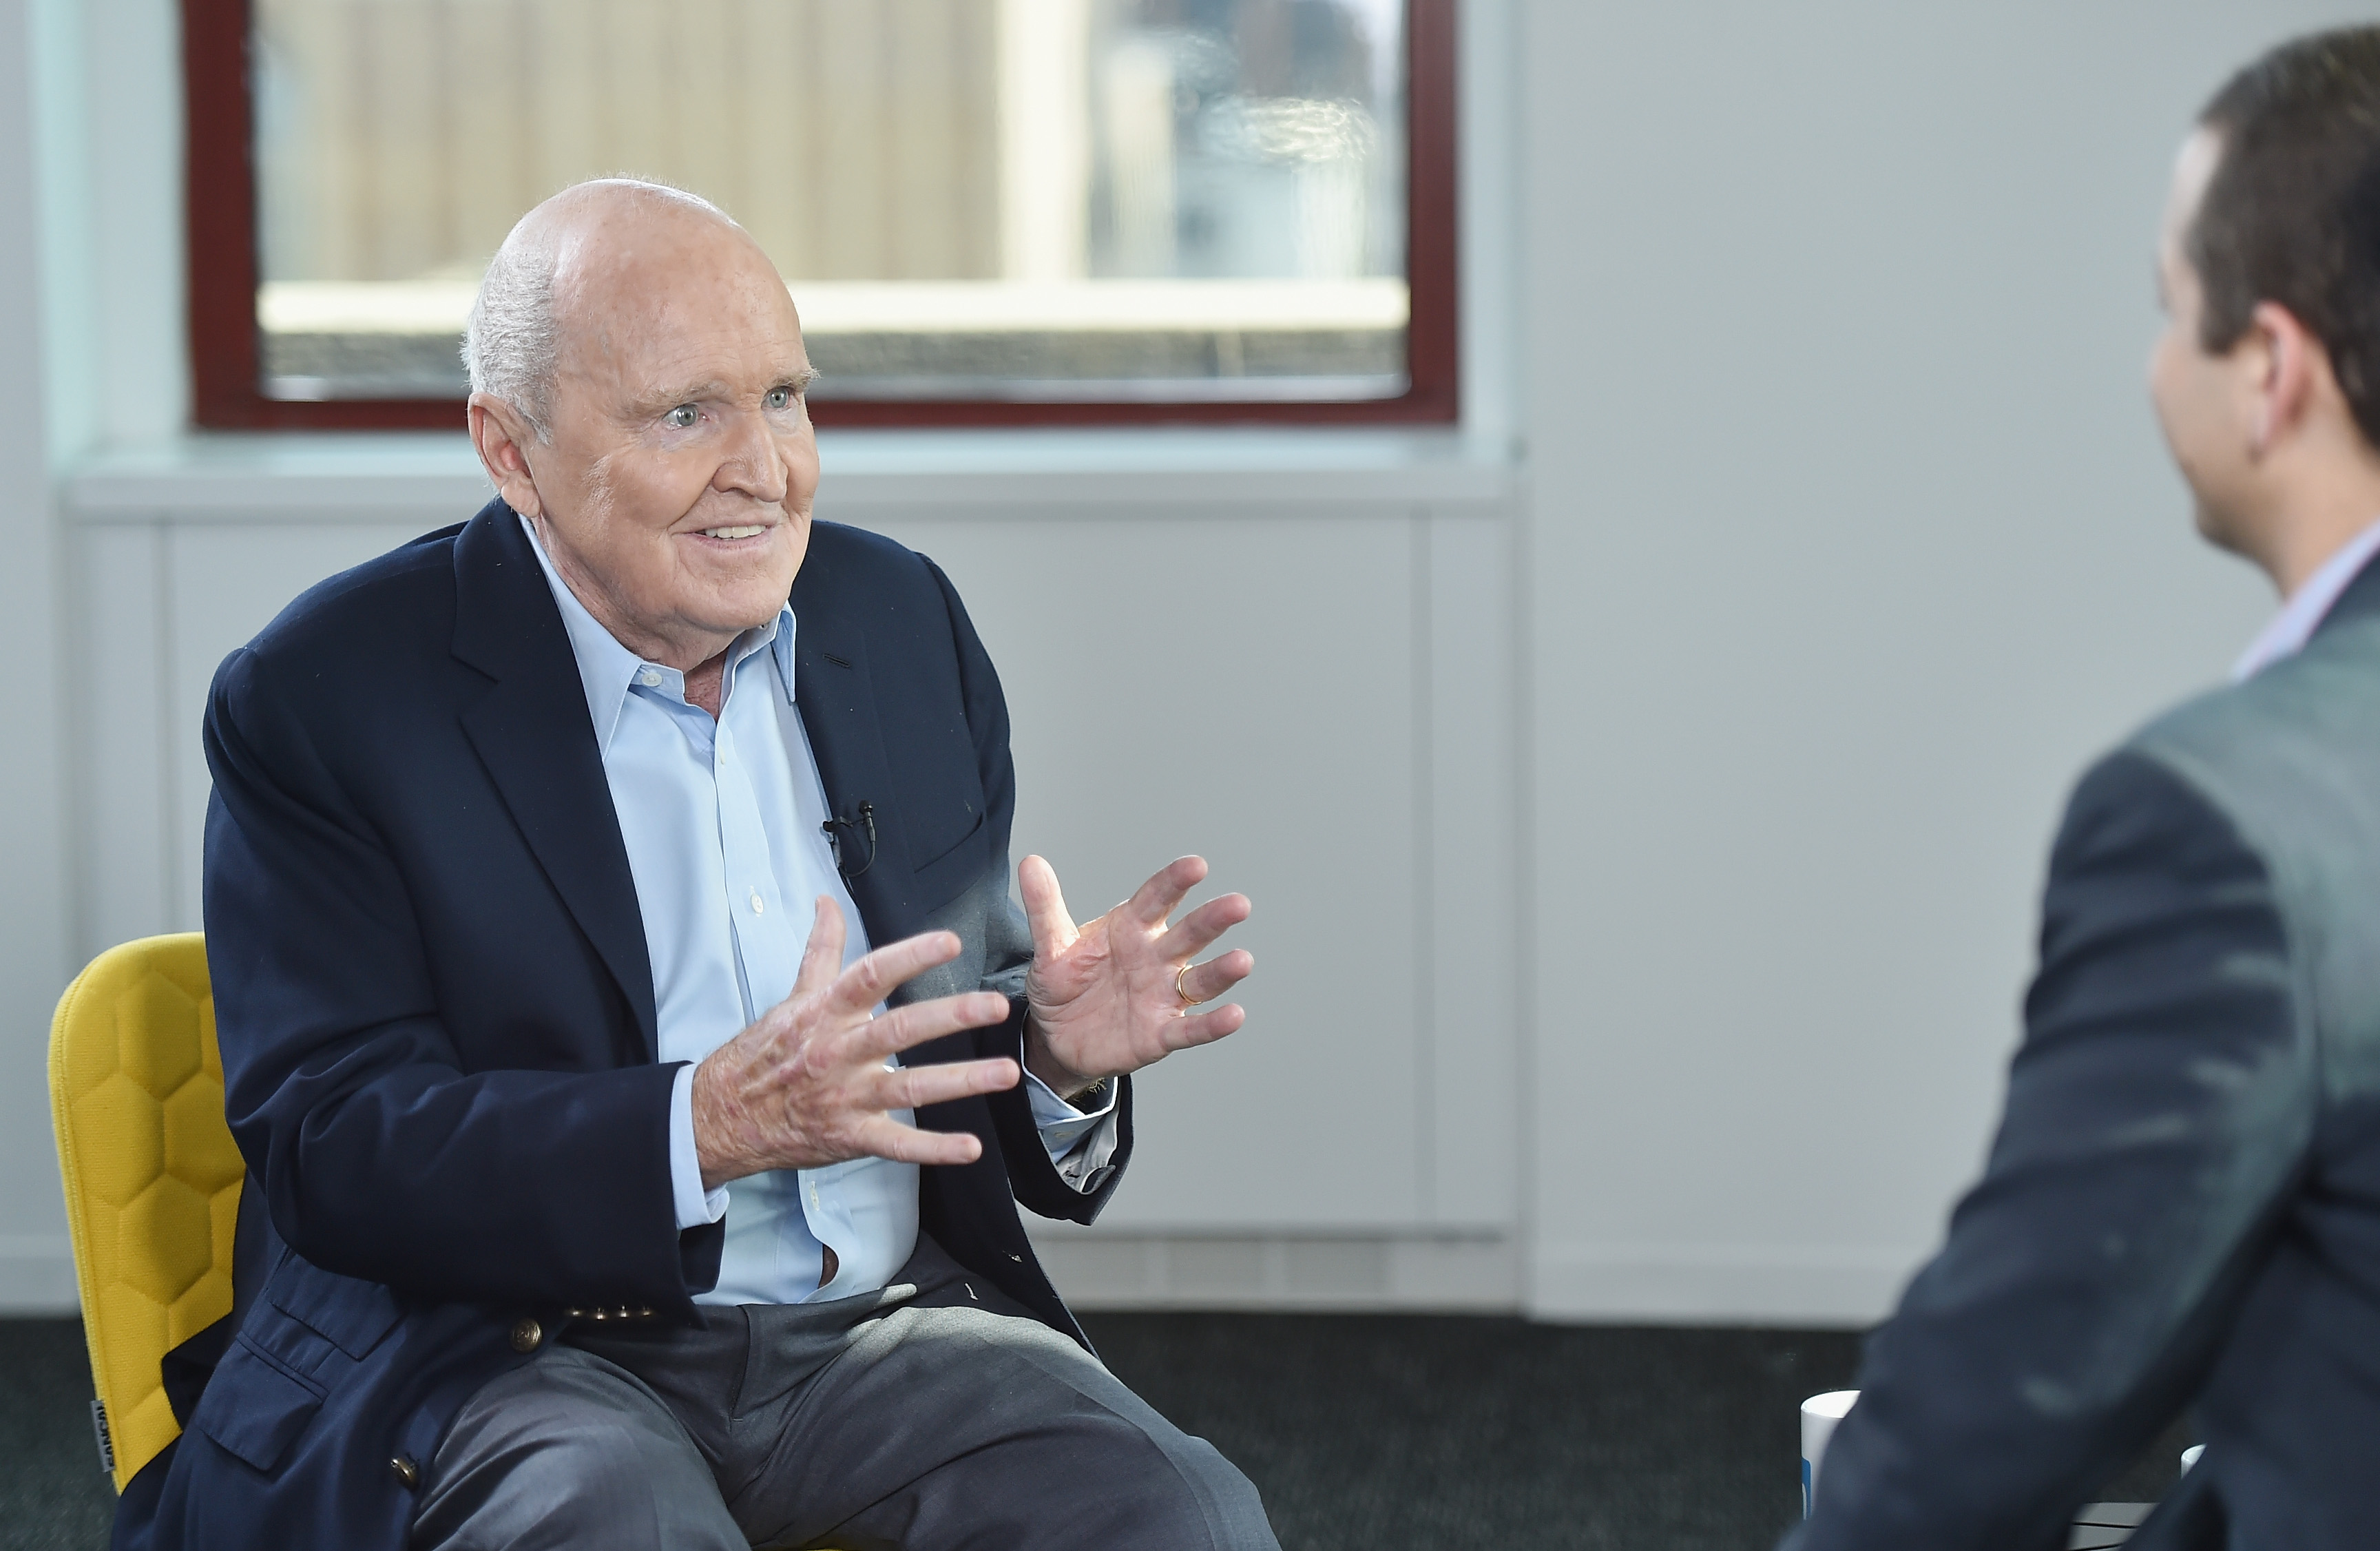 LinkedIn Executive Editor Dan Roth Interviews Jack Welch